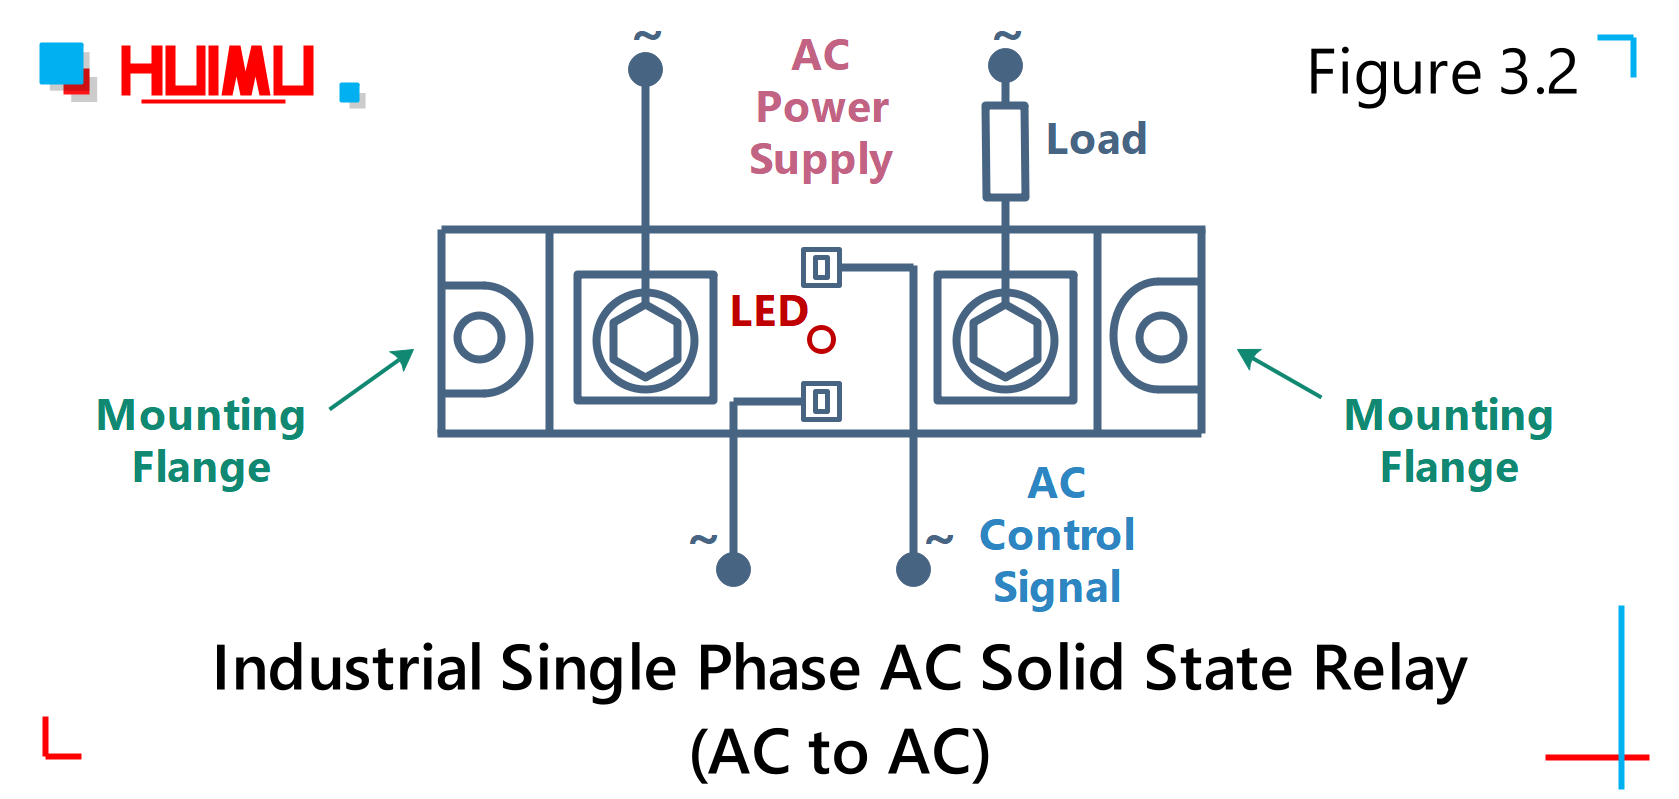 industrial three phase AC solid state relay (DC to AC) wiring diagram and circuit diagram Type 2